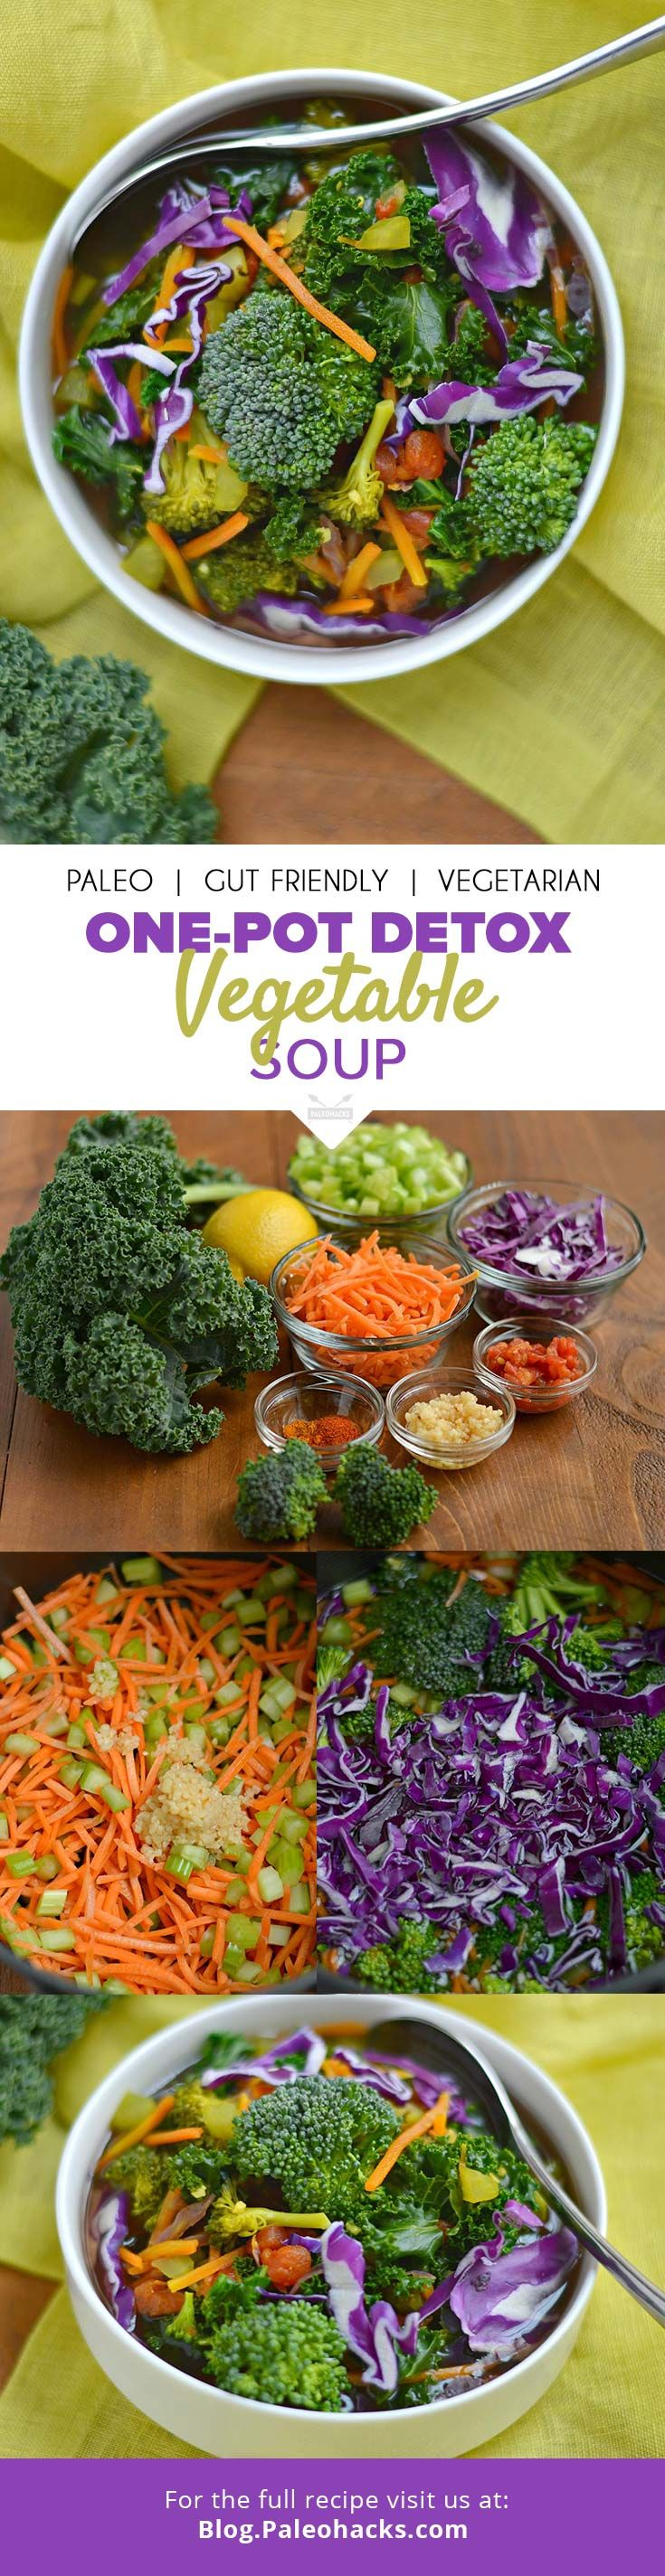 This vibrant, immune-boosting soup has a rainbow of vegetables and herbs, nourishing your body from the inside out! Get the recipe here: http://paleo.co/onepotvegsoup